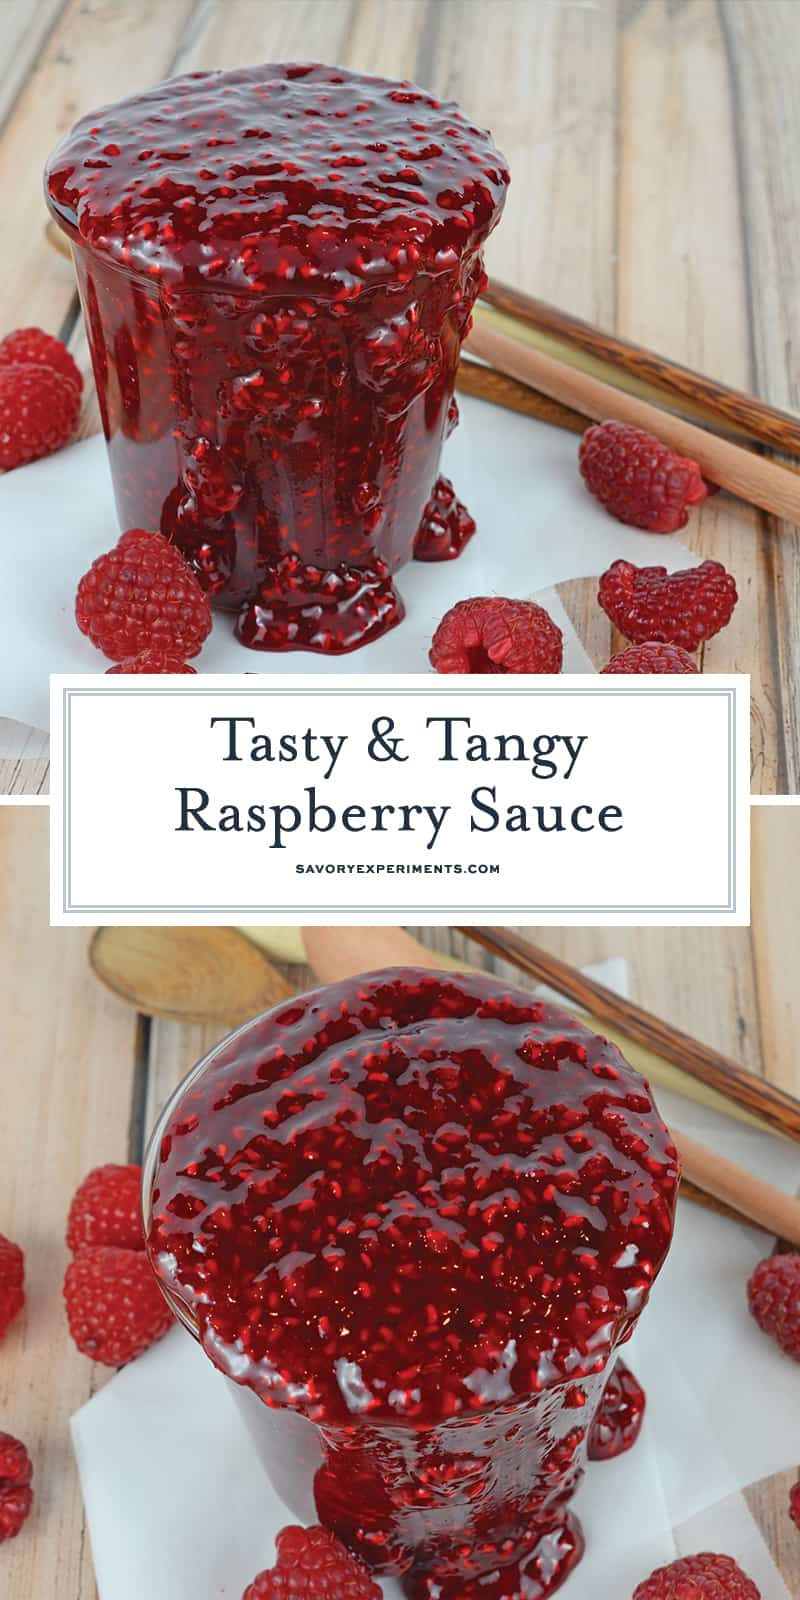 Raspberry Sauce is so versatile, use it on ice cream cheesecake, meringues, chocolate cake and more! And it only takes 5 ingredients and 20 minutes! #raspberrysauce #raspberrycoulis www.savoryexperiments.com